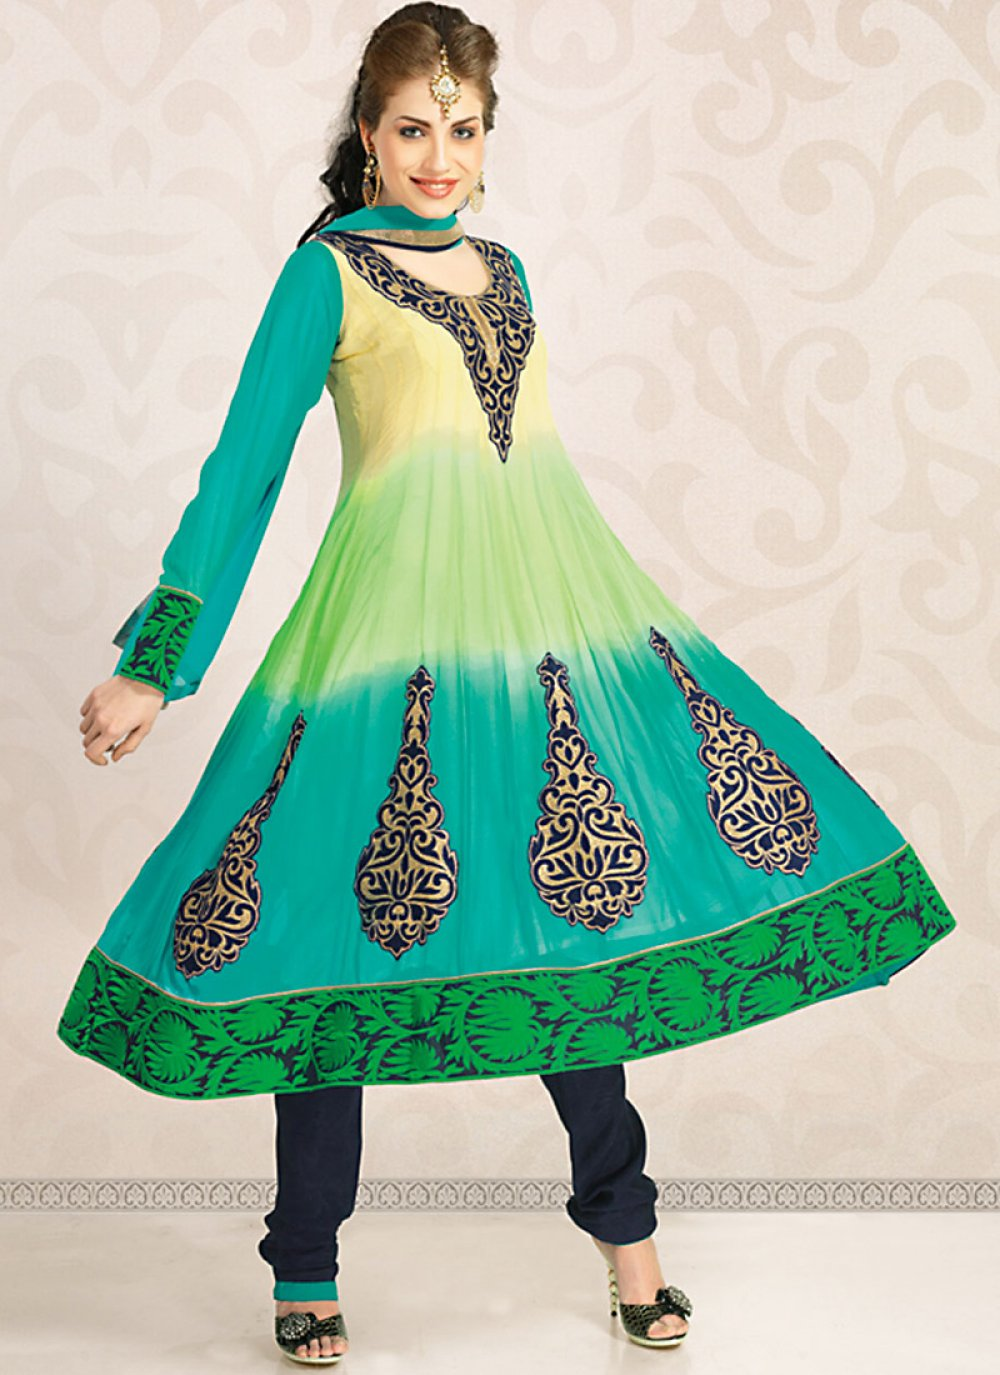 Magnificient Aloe Vera Green, Bige Brown & Tal Blue Salwar Kameez